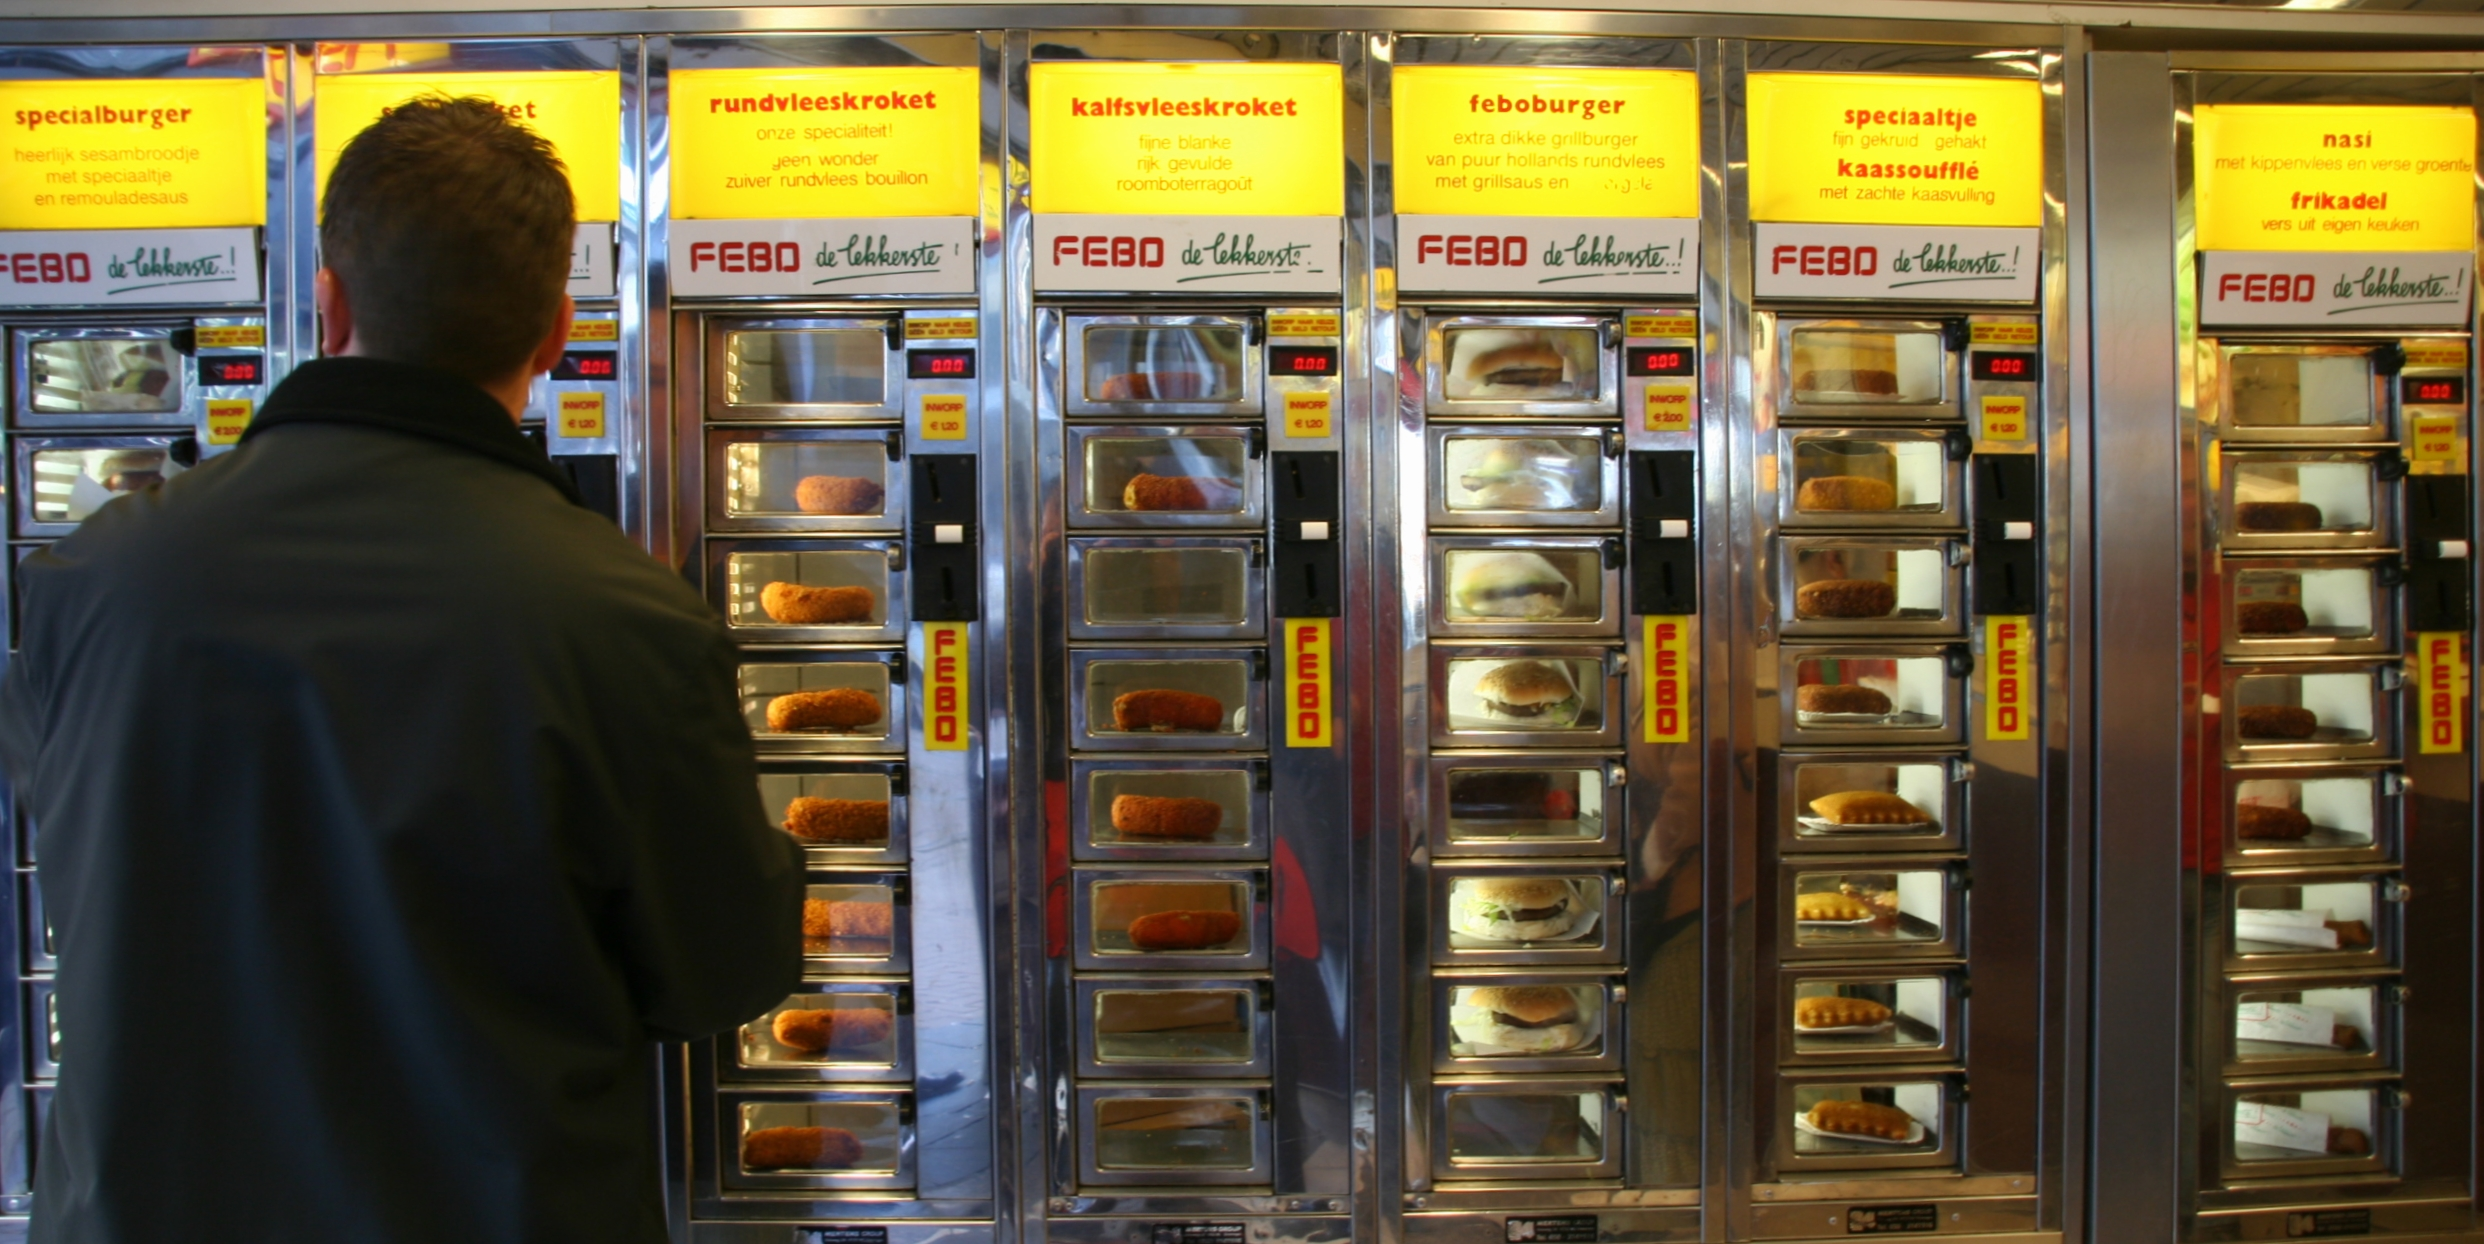 File Distributeurs febo jpg   Wikimedia Commons